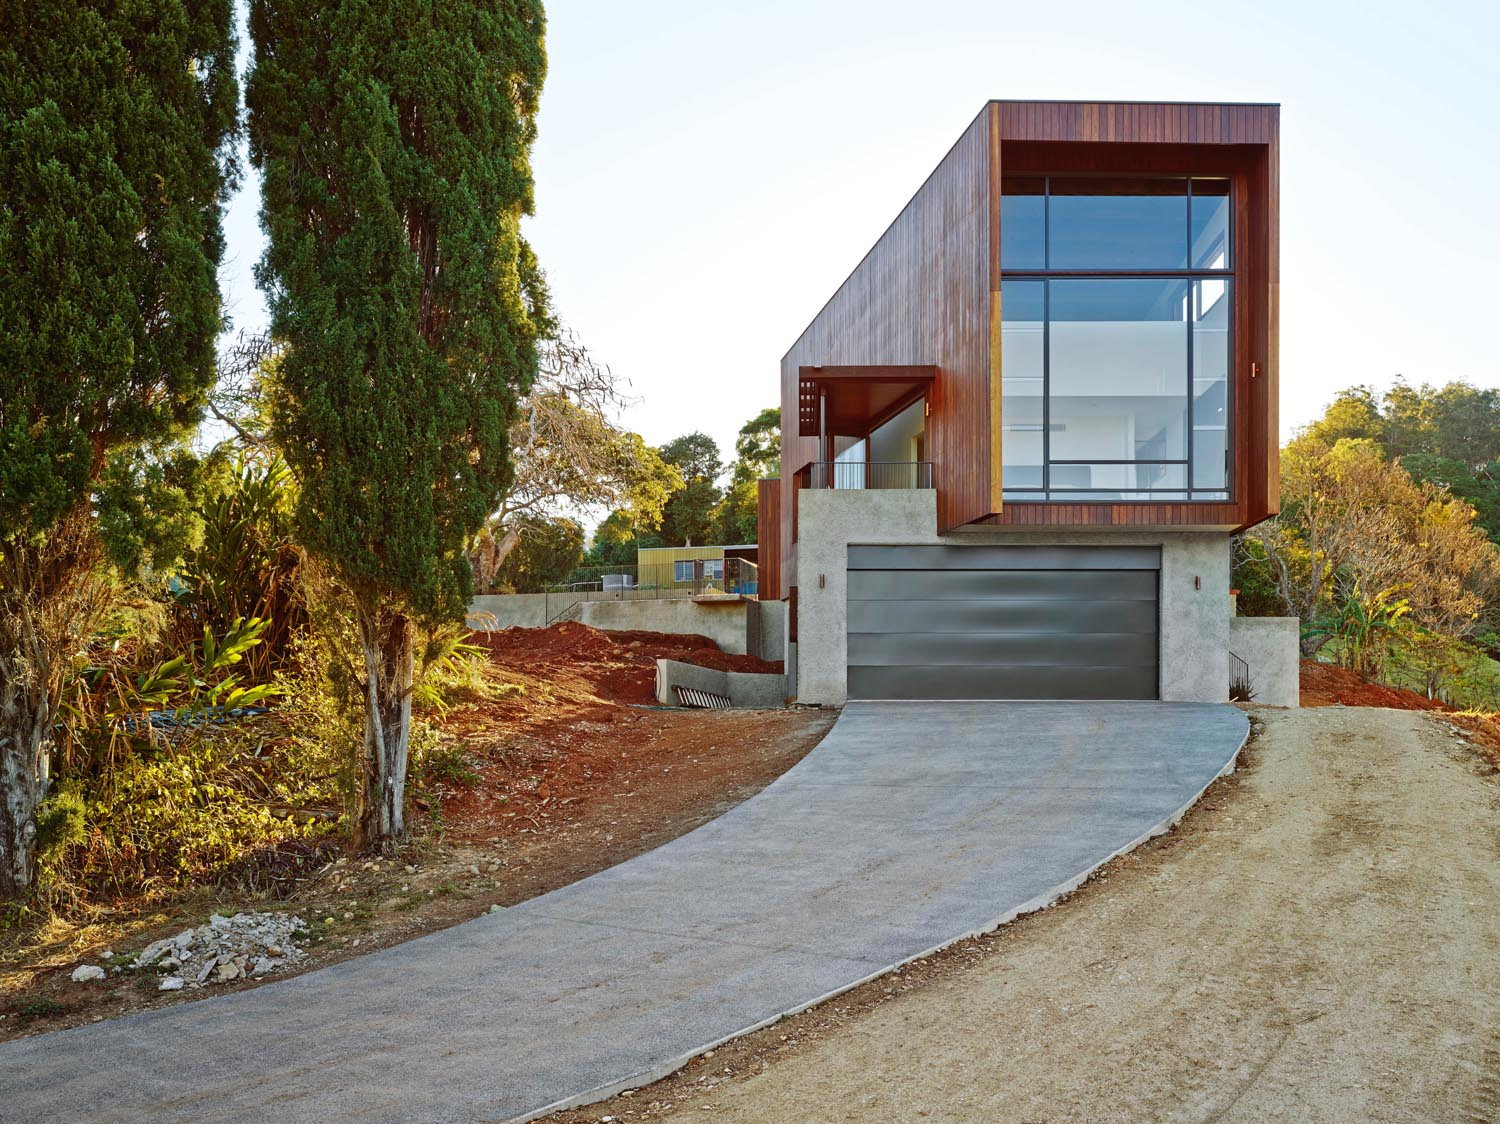 Grand Designs Australia: Futuristic Farmhouse